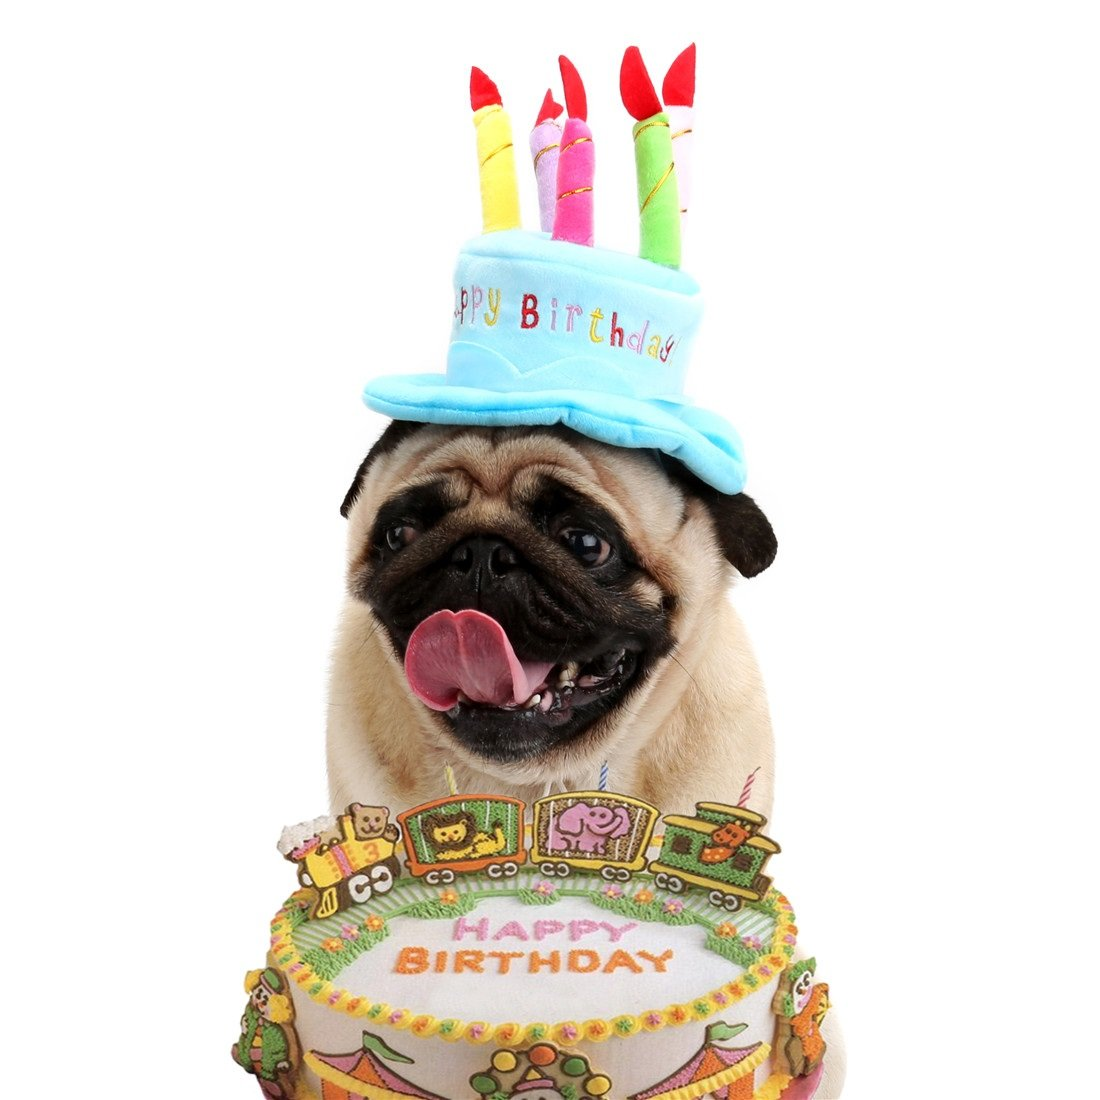 Dora Bridal Dog Cat Birthday Hat Adorable Pet Happy Party With Cake And 5 Colorful Candles Design Costume Dogs